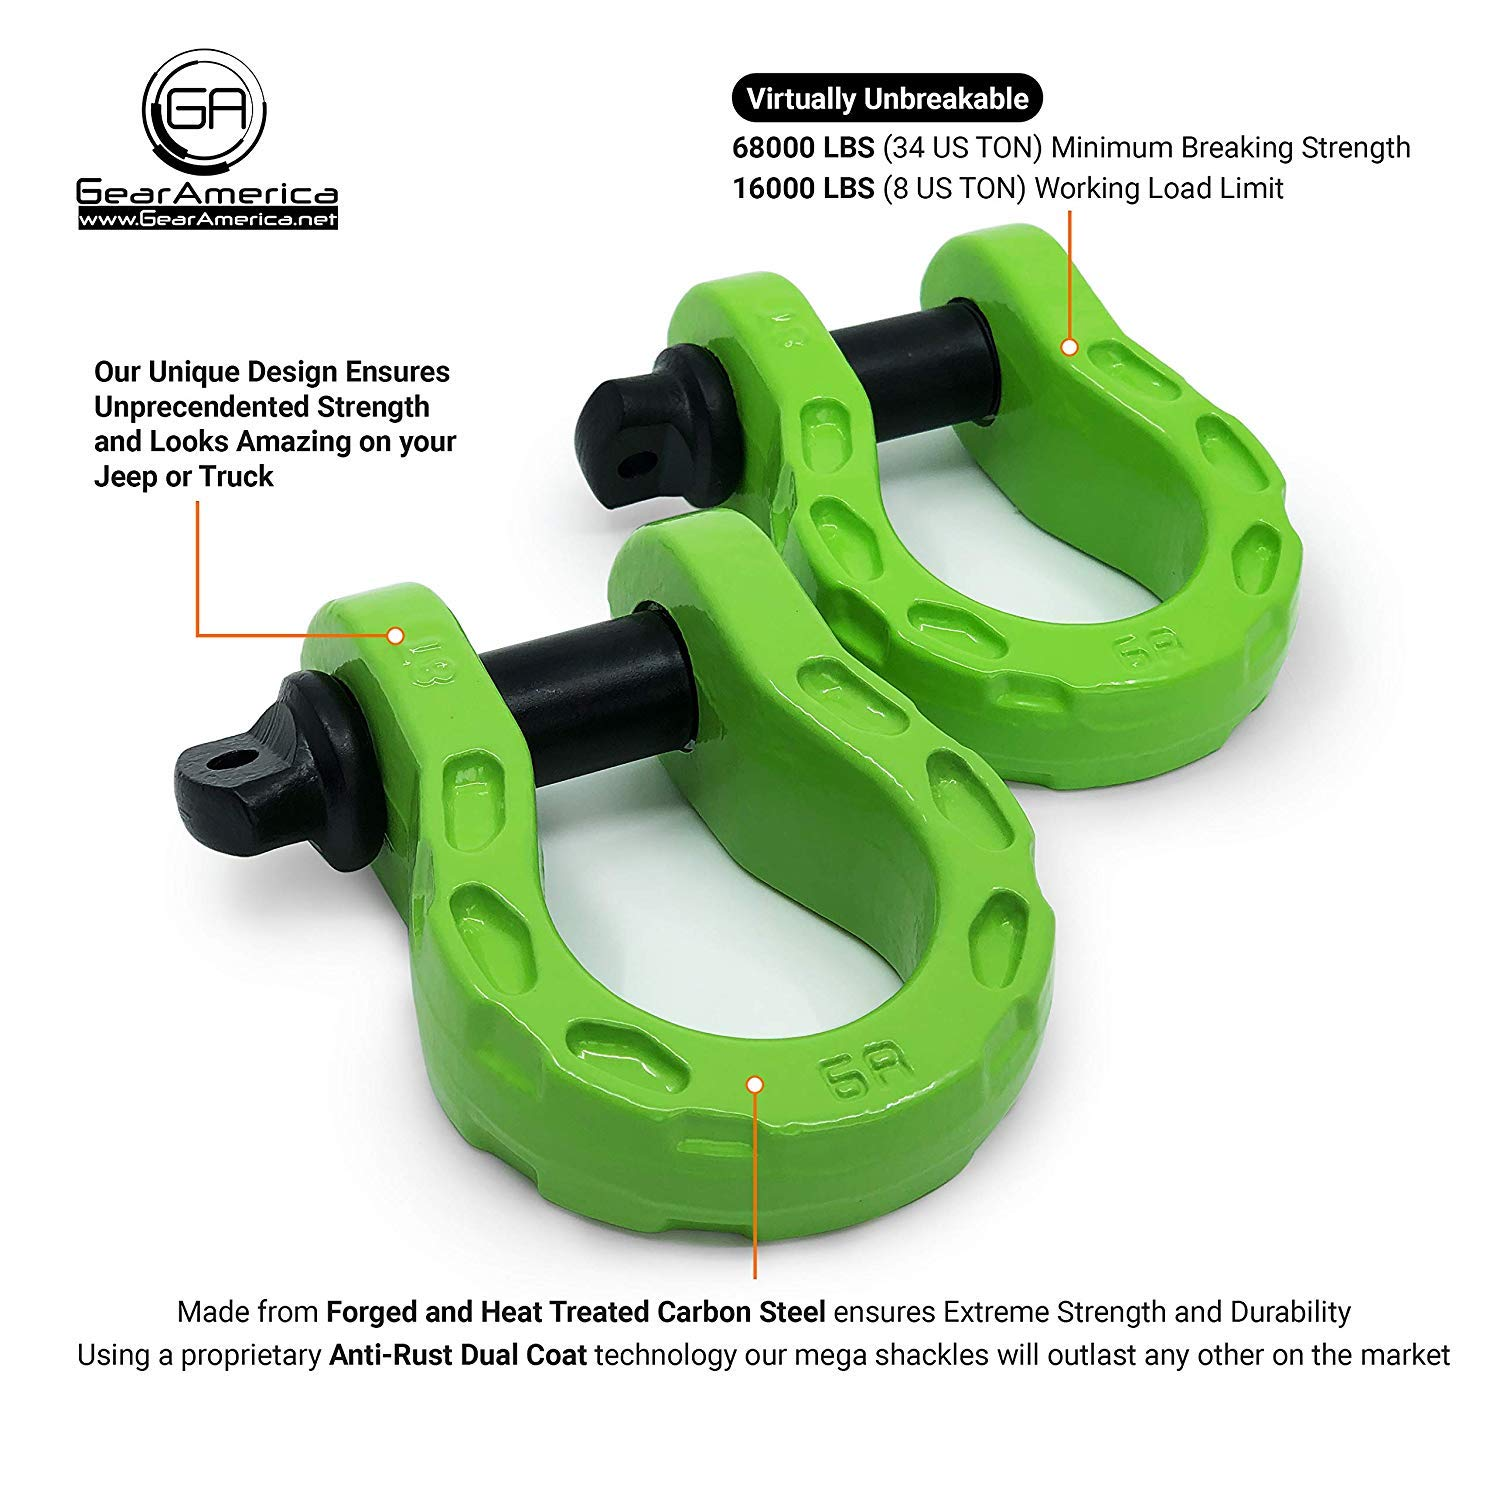 34 US Ton GearAmerica Mega Duty D Ring Shackles Green 3//4 Shackle 7//8 Pin 2 PK Washers| Securely Connect Tow Strap or Winch Rope to Jeep for Off-Road 4x4 Recovery Strength | 68000 lbs